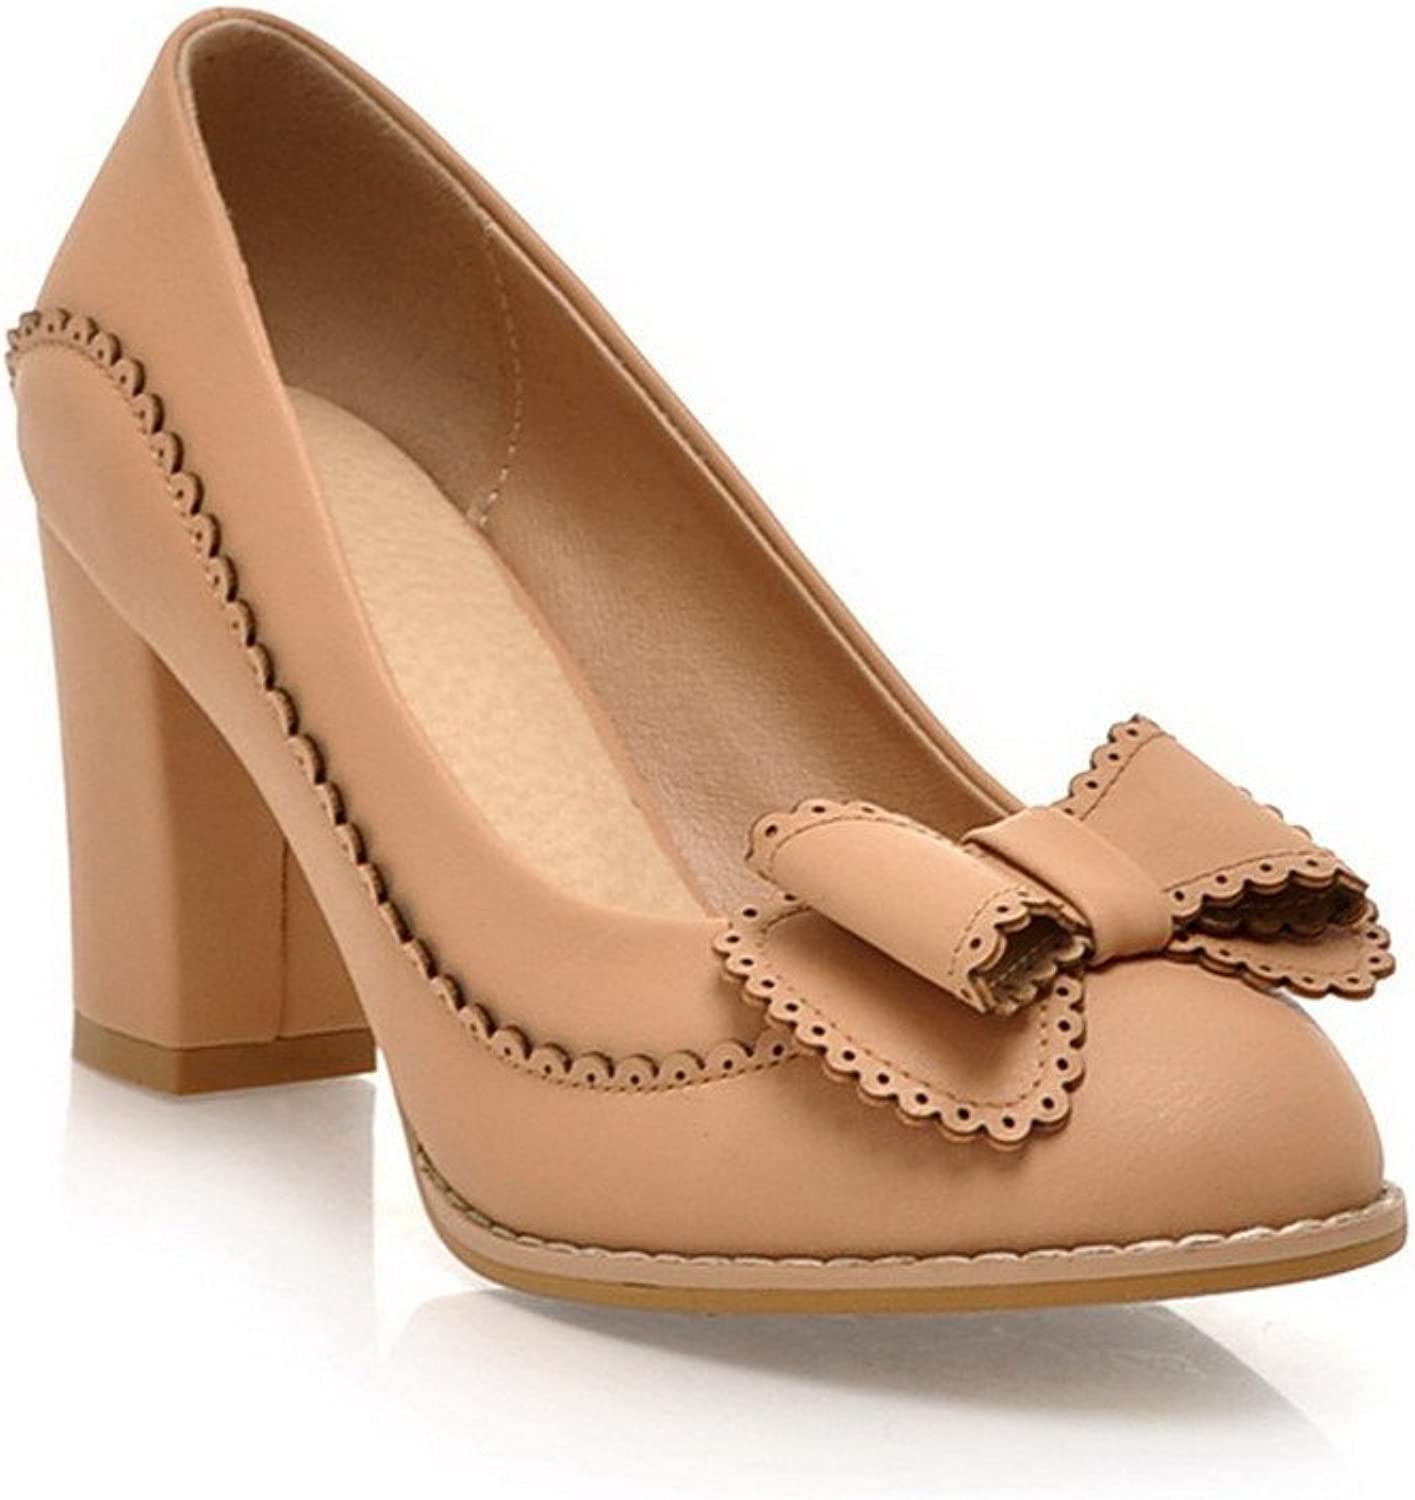 WeiPoot Women's Closed Round Toe Kitten Chunky Heels Soft Material Solid Pumps with Bow